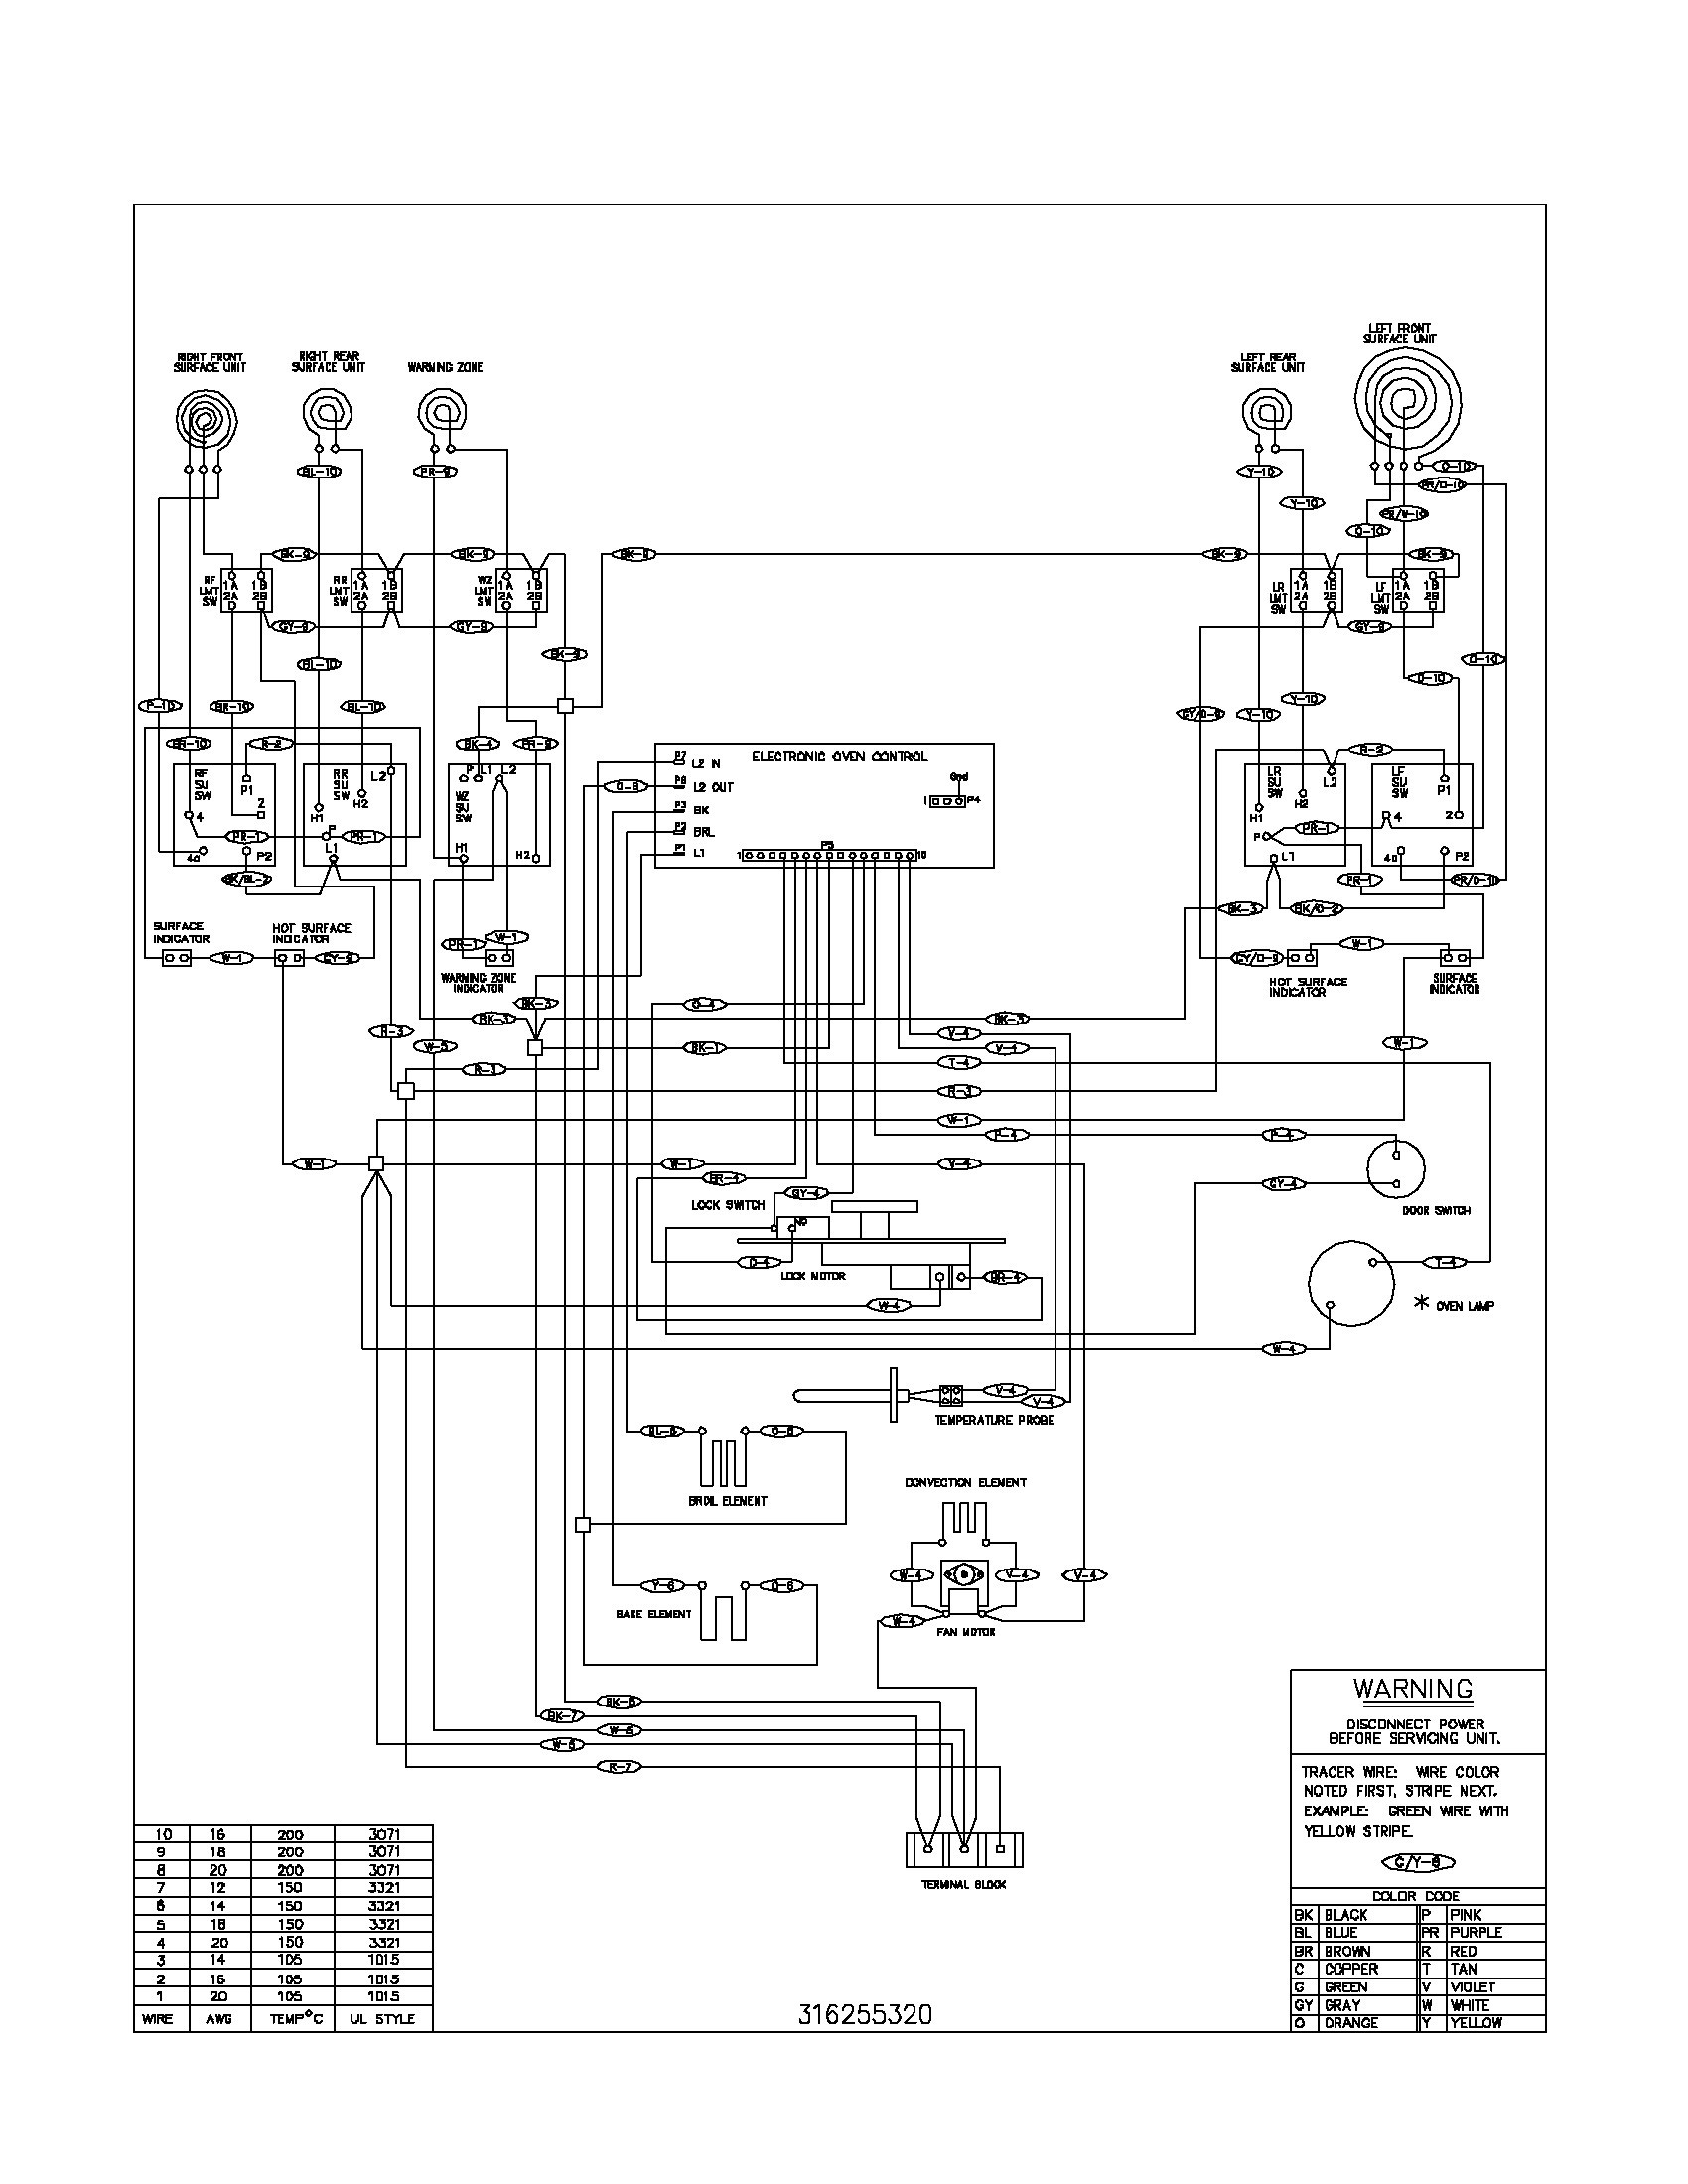 Wiring Diagram For Whirlpool Range - Wiring Diagram Structure on kenmore oven parts schematic, kenmore dryer wiring schematic, kenmore refrigerator wiring schematic,